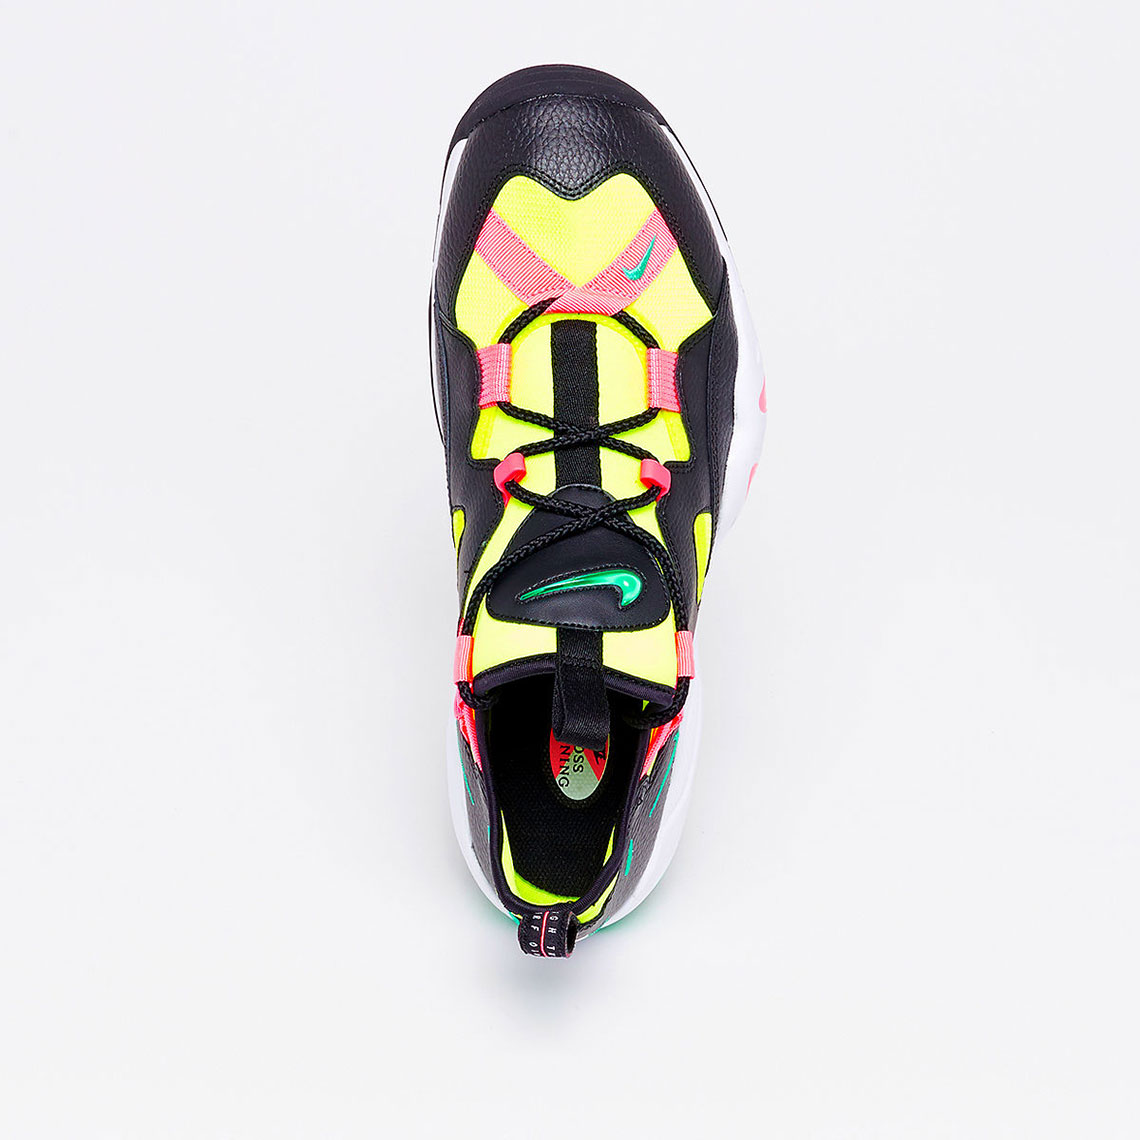 competitive price 31579 29a68 Nike Air Scream AH8517-001 Available Now   SneakerNews.com